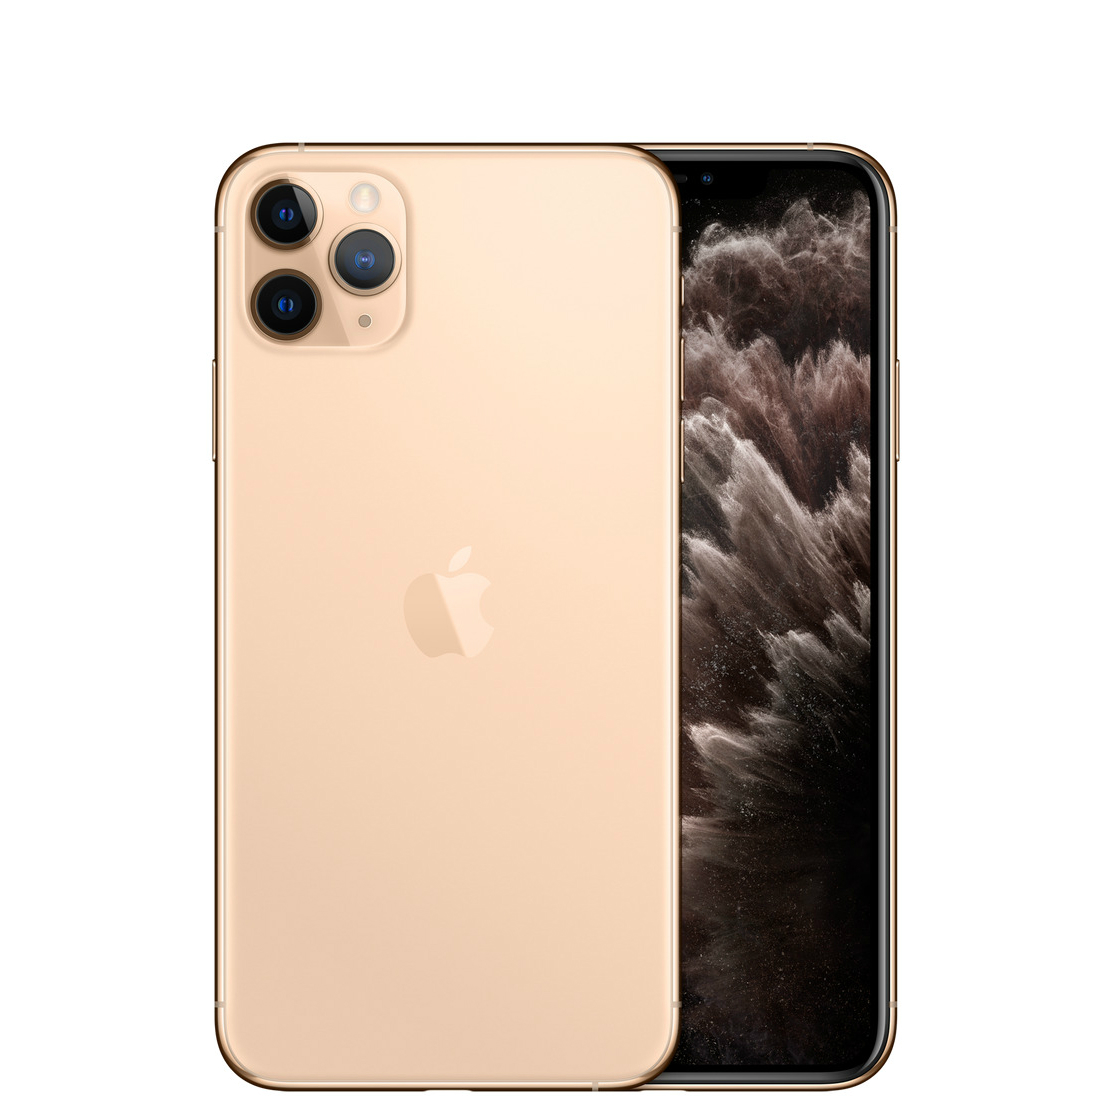 Image of Apple iPhone 11 Pro 512GB A2217 Dual Sim with Tempered Glass Screen Protector - Gold